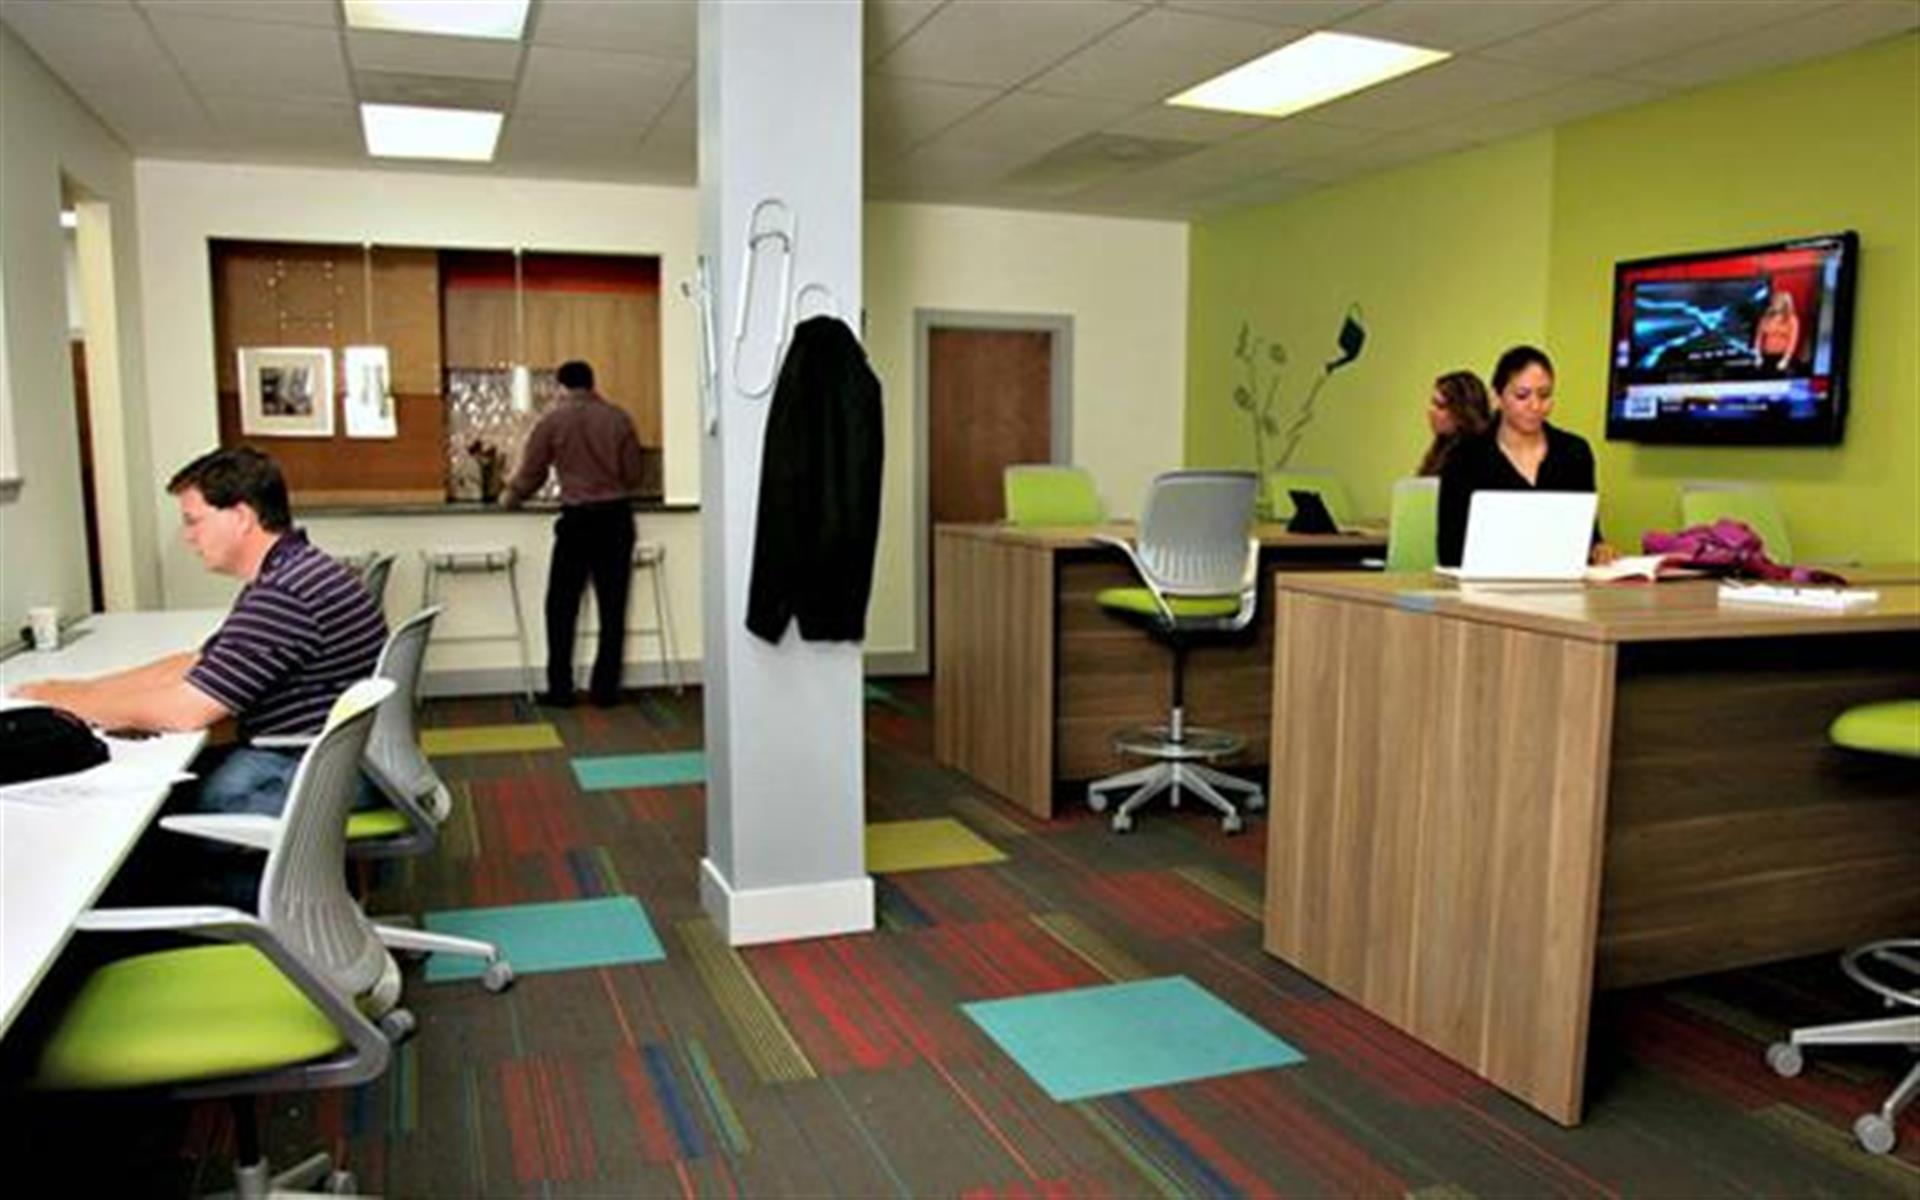 VenturePoint Medical Center - Coworking Day Pass